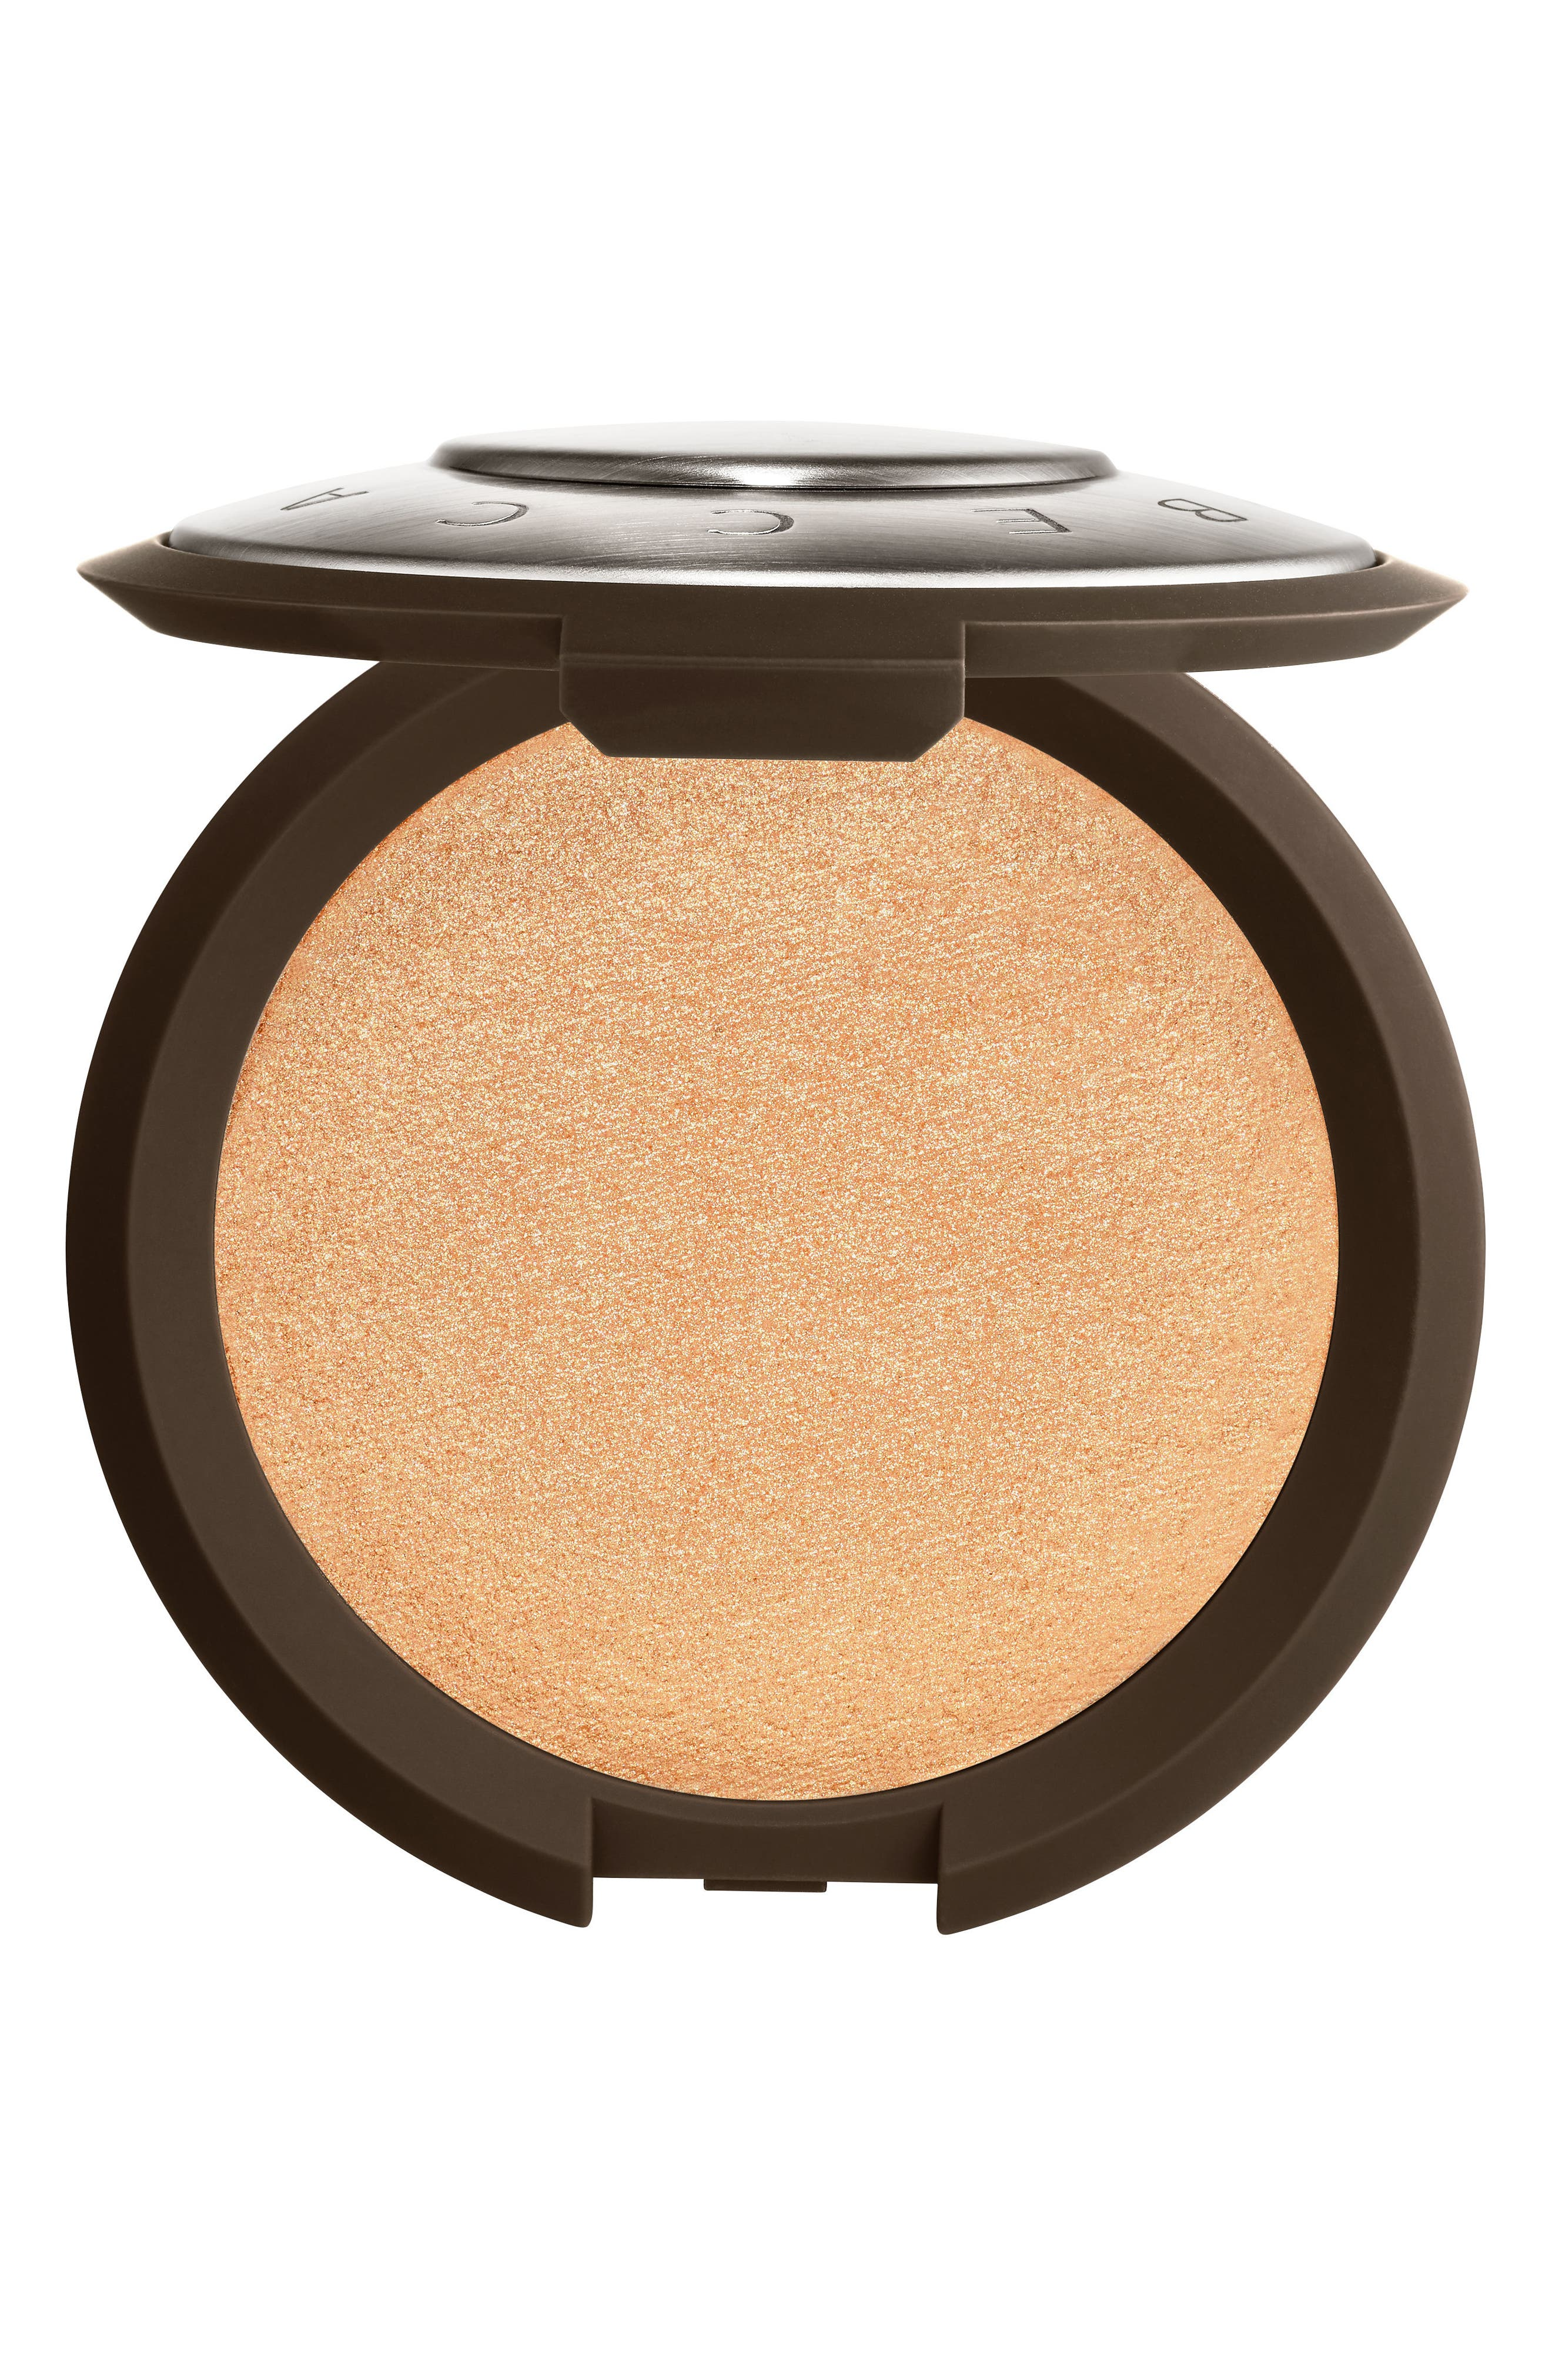 BECCA Shimmering Skin Perfector Pressed Highlighter,                         Main,                         color, Champagne Pop